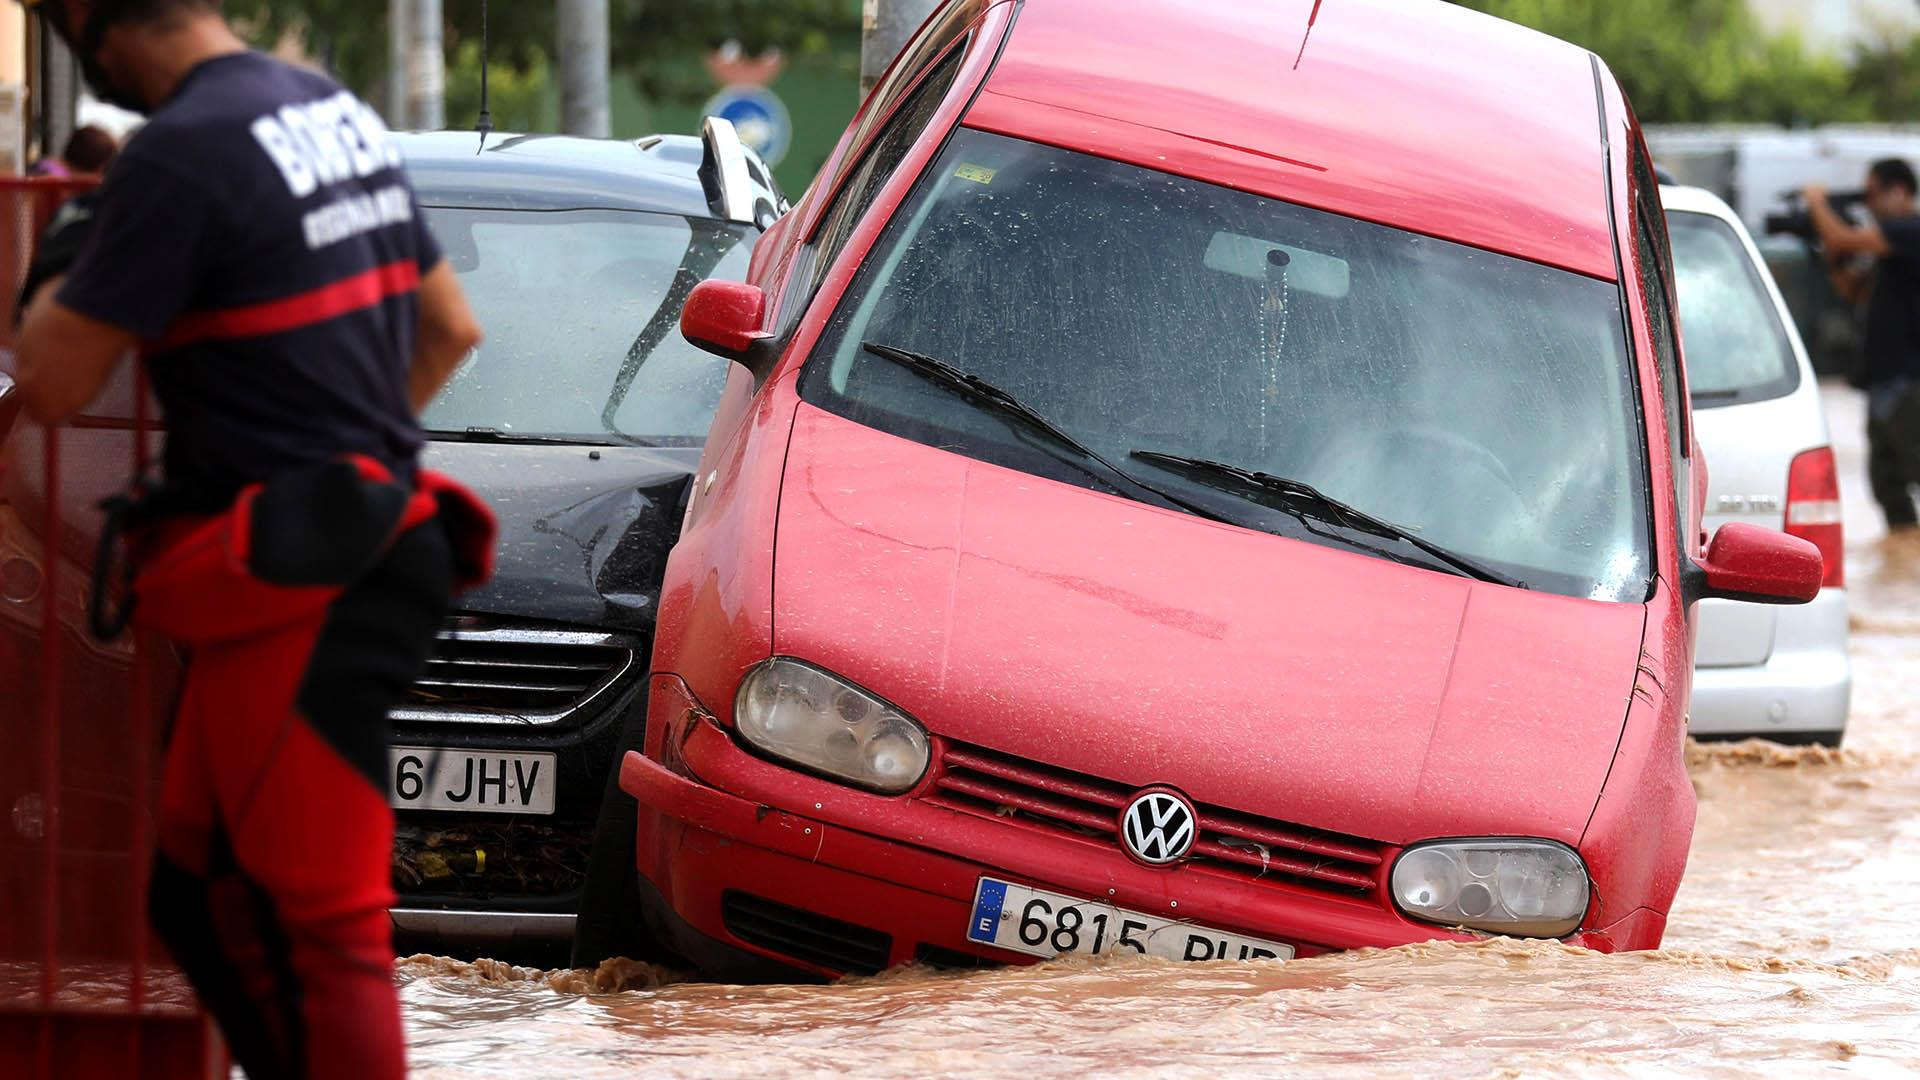 Residents evacuated as deadly floods hit southeastern Spain